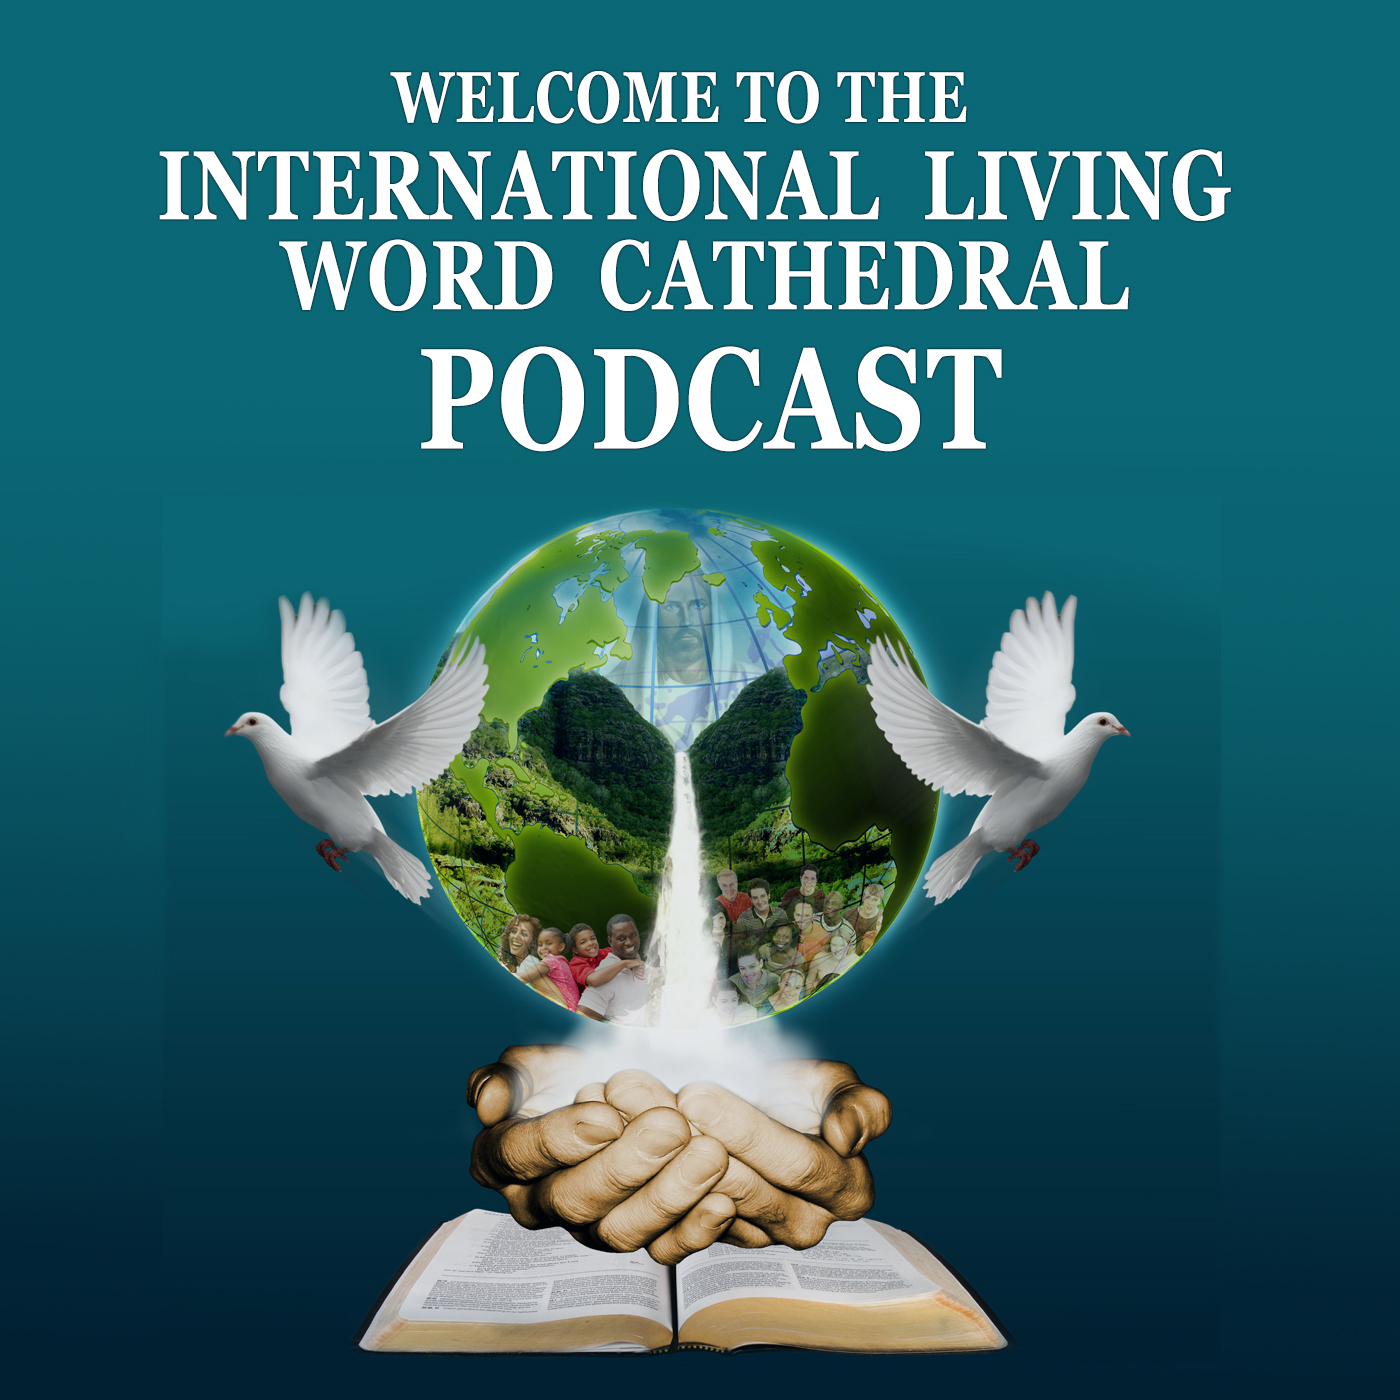 International Living Word Cathedral